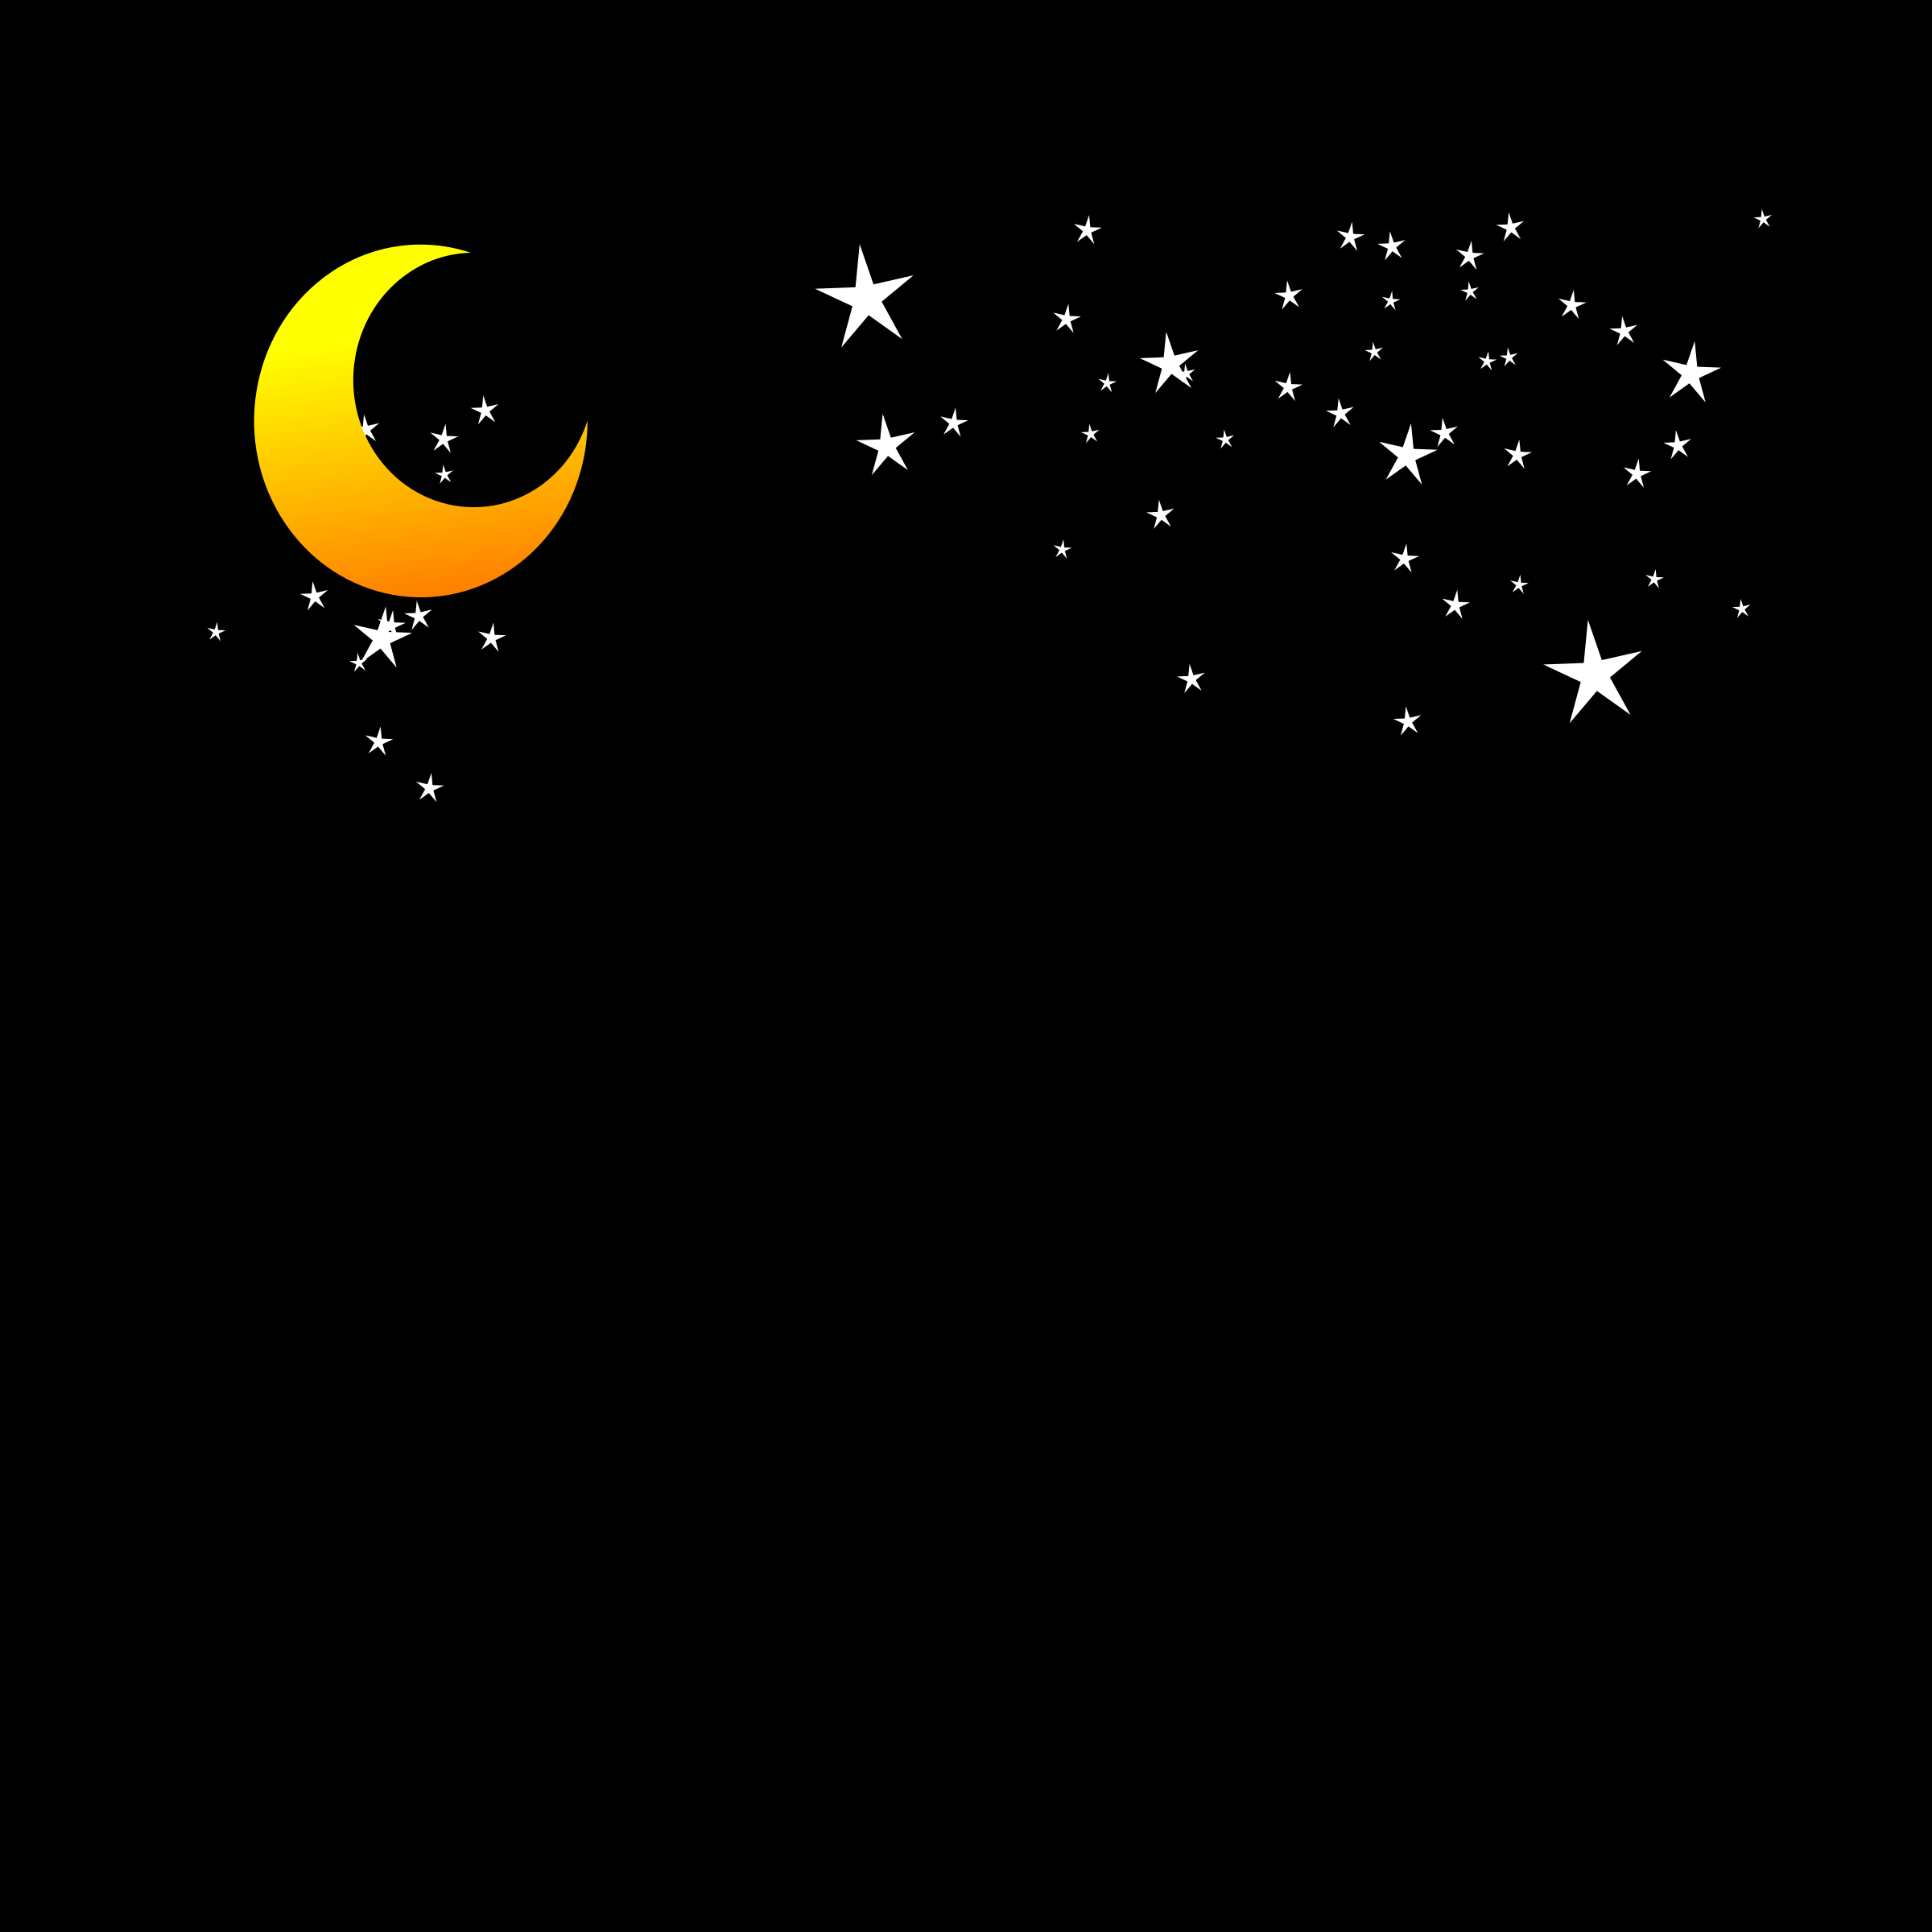 Free Images Stars and Moon Clipart.